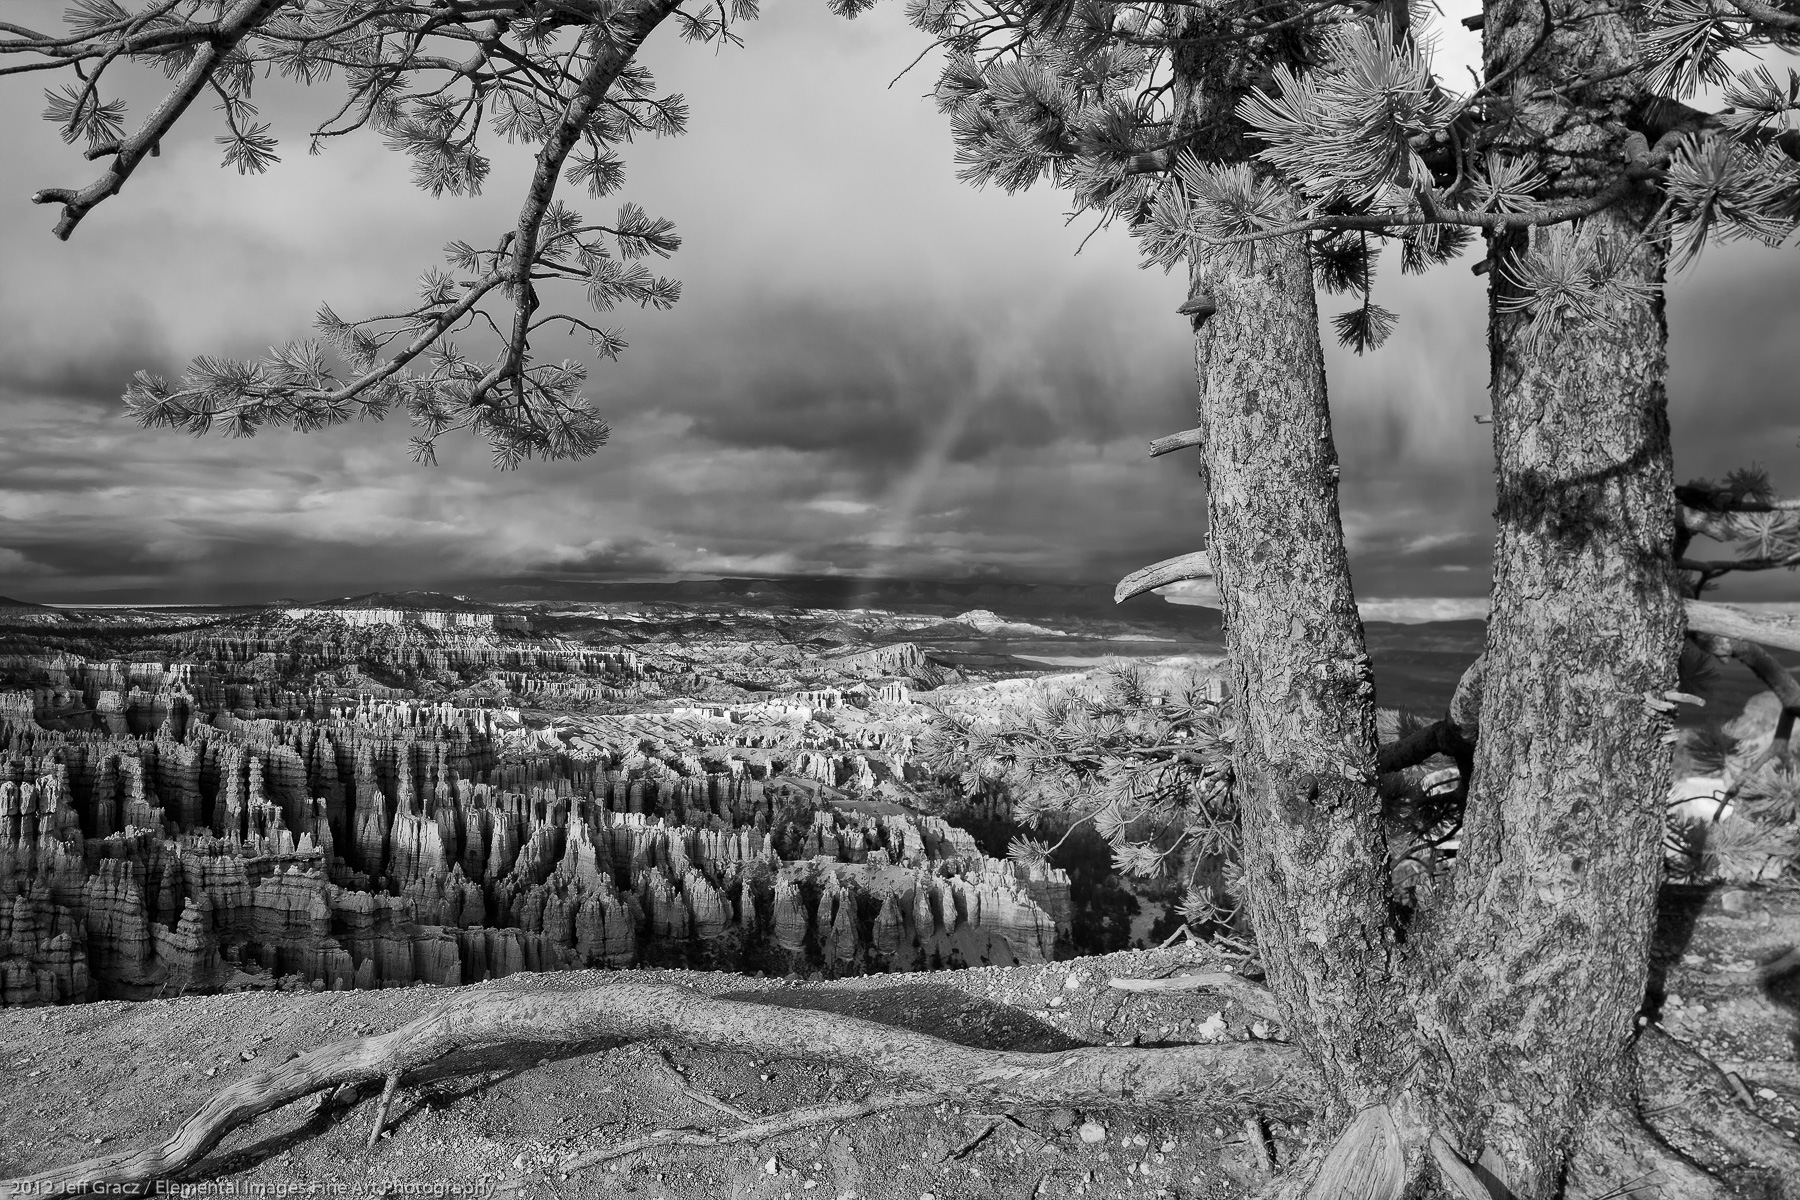 View from Bryce Canyon Rim V | Bryce Canyon National Park |  | USA - © 2012 Jeff Gracz / Elemental Images Fine Art Photography - All Rights Reserved Worldwide